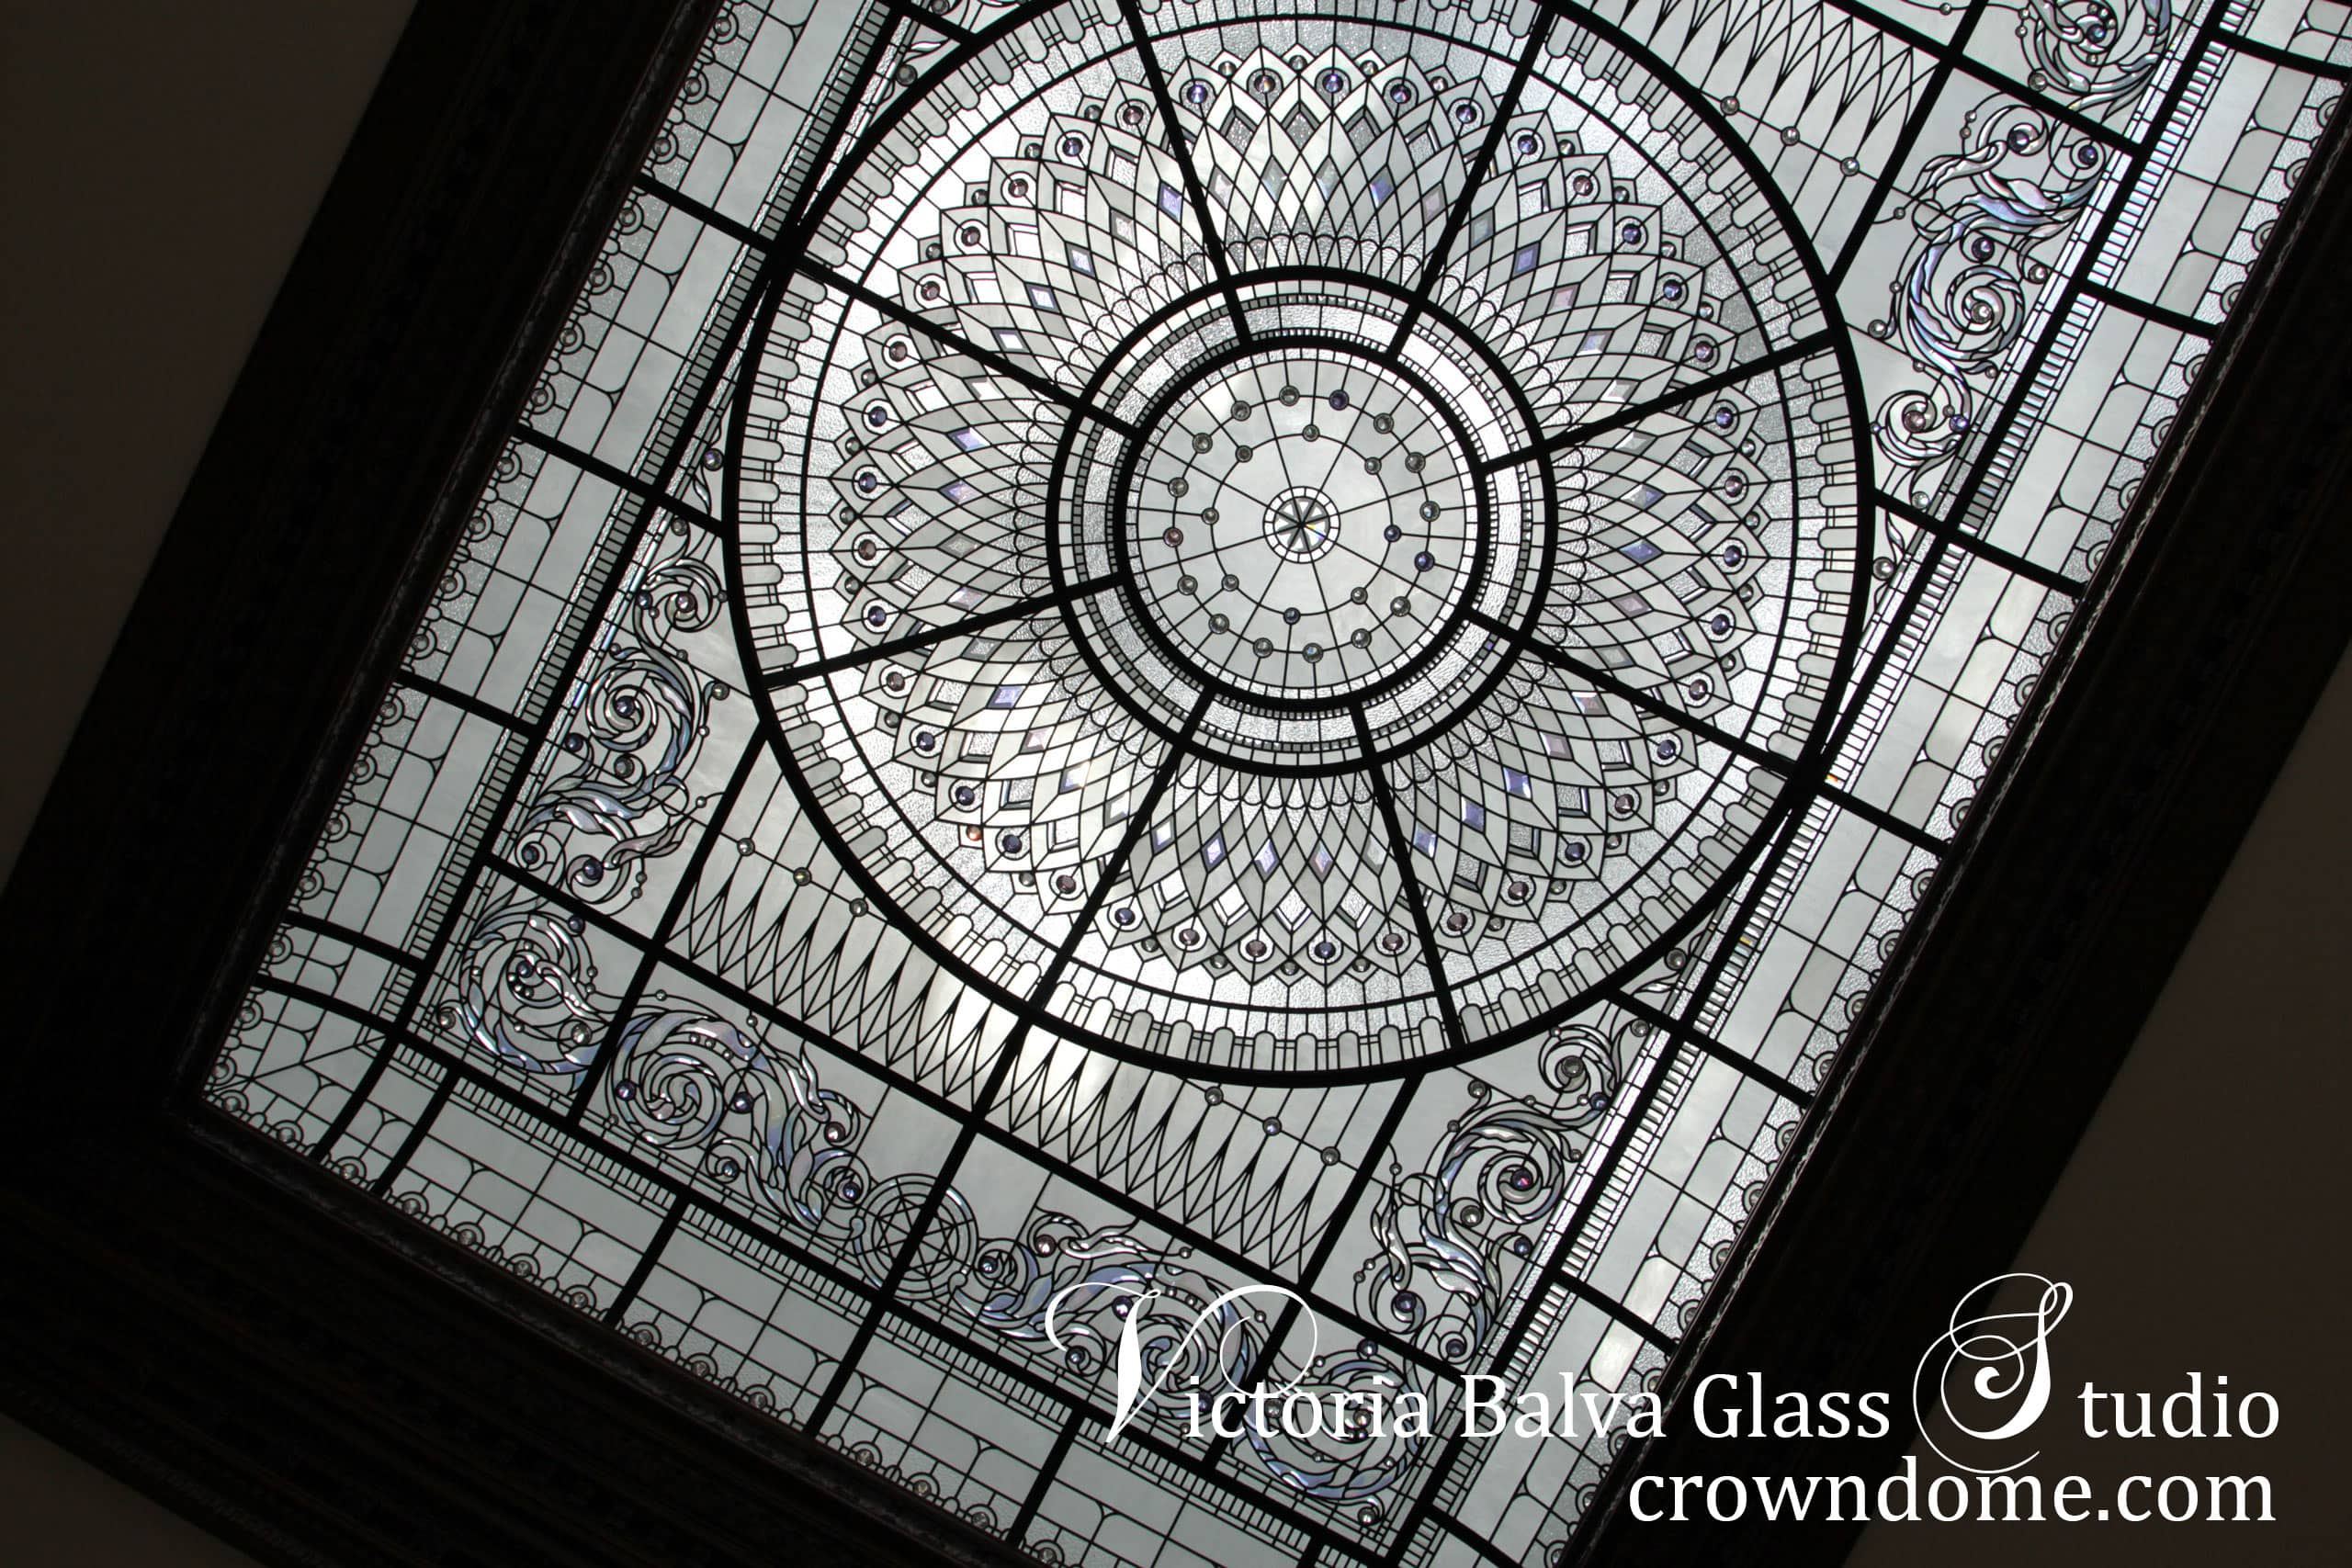 Large-scale leaded glass dome for a custom build luxury residence in Connecticut. Interior design with stained and leaded glass dome and hand beveled colored glass ornament border